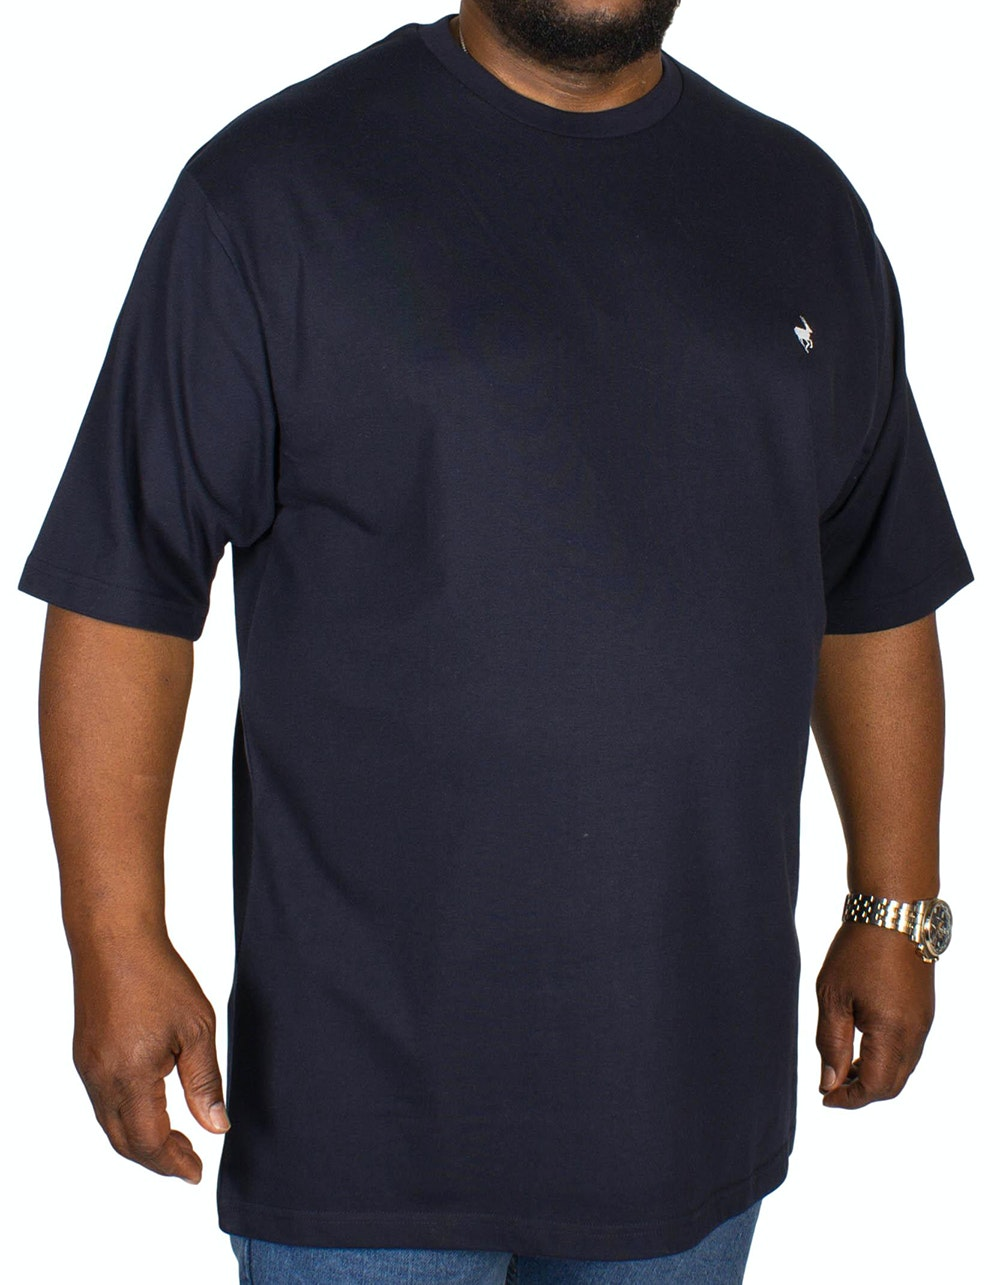 Bigdude Signature Crew Neck T-Shirt Navy